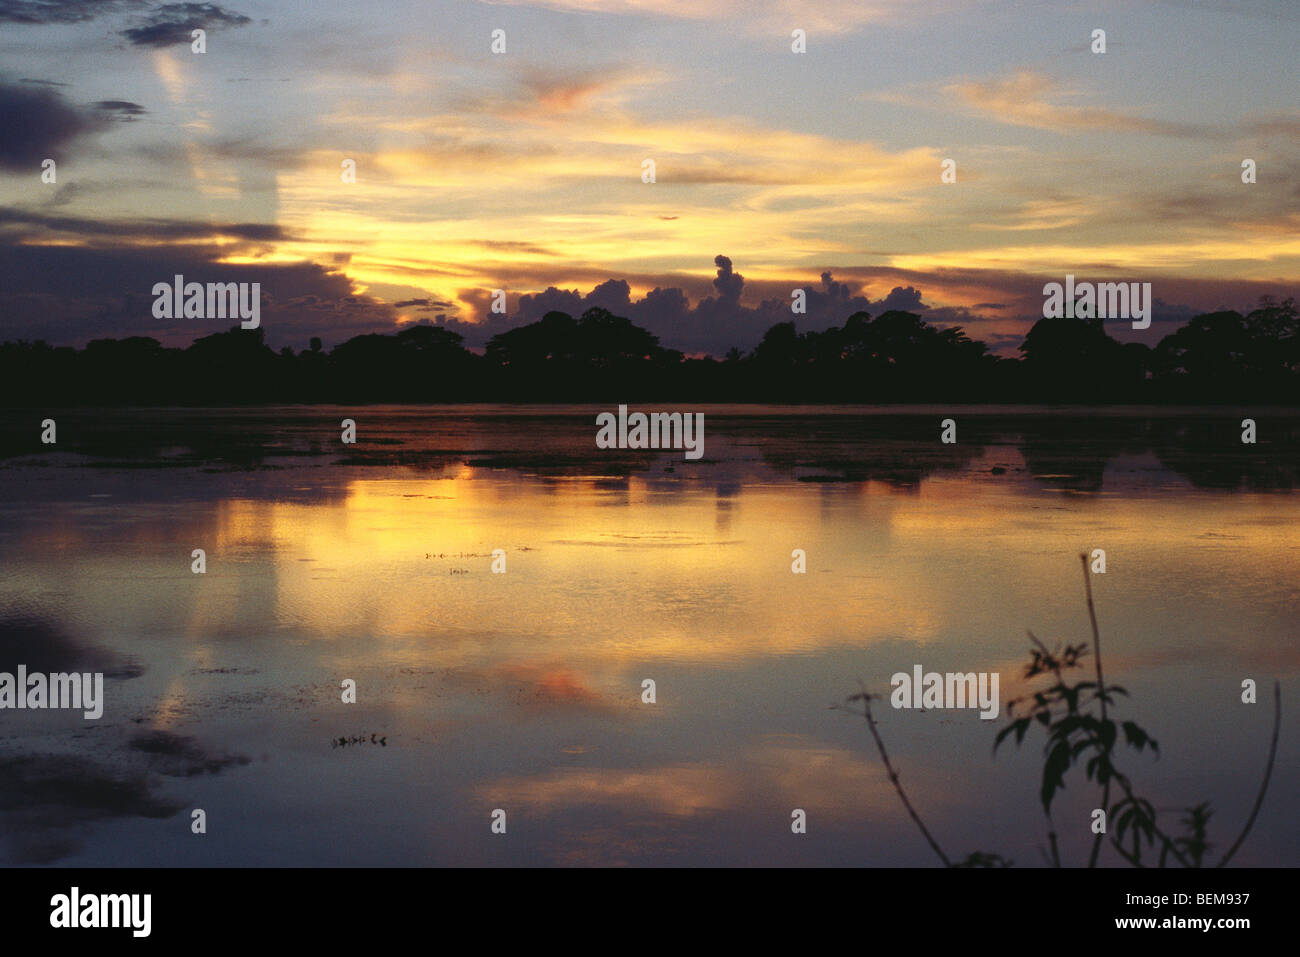 Myanmar (Burma), waterscape at sunset - Stock Image